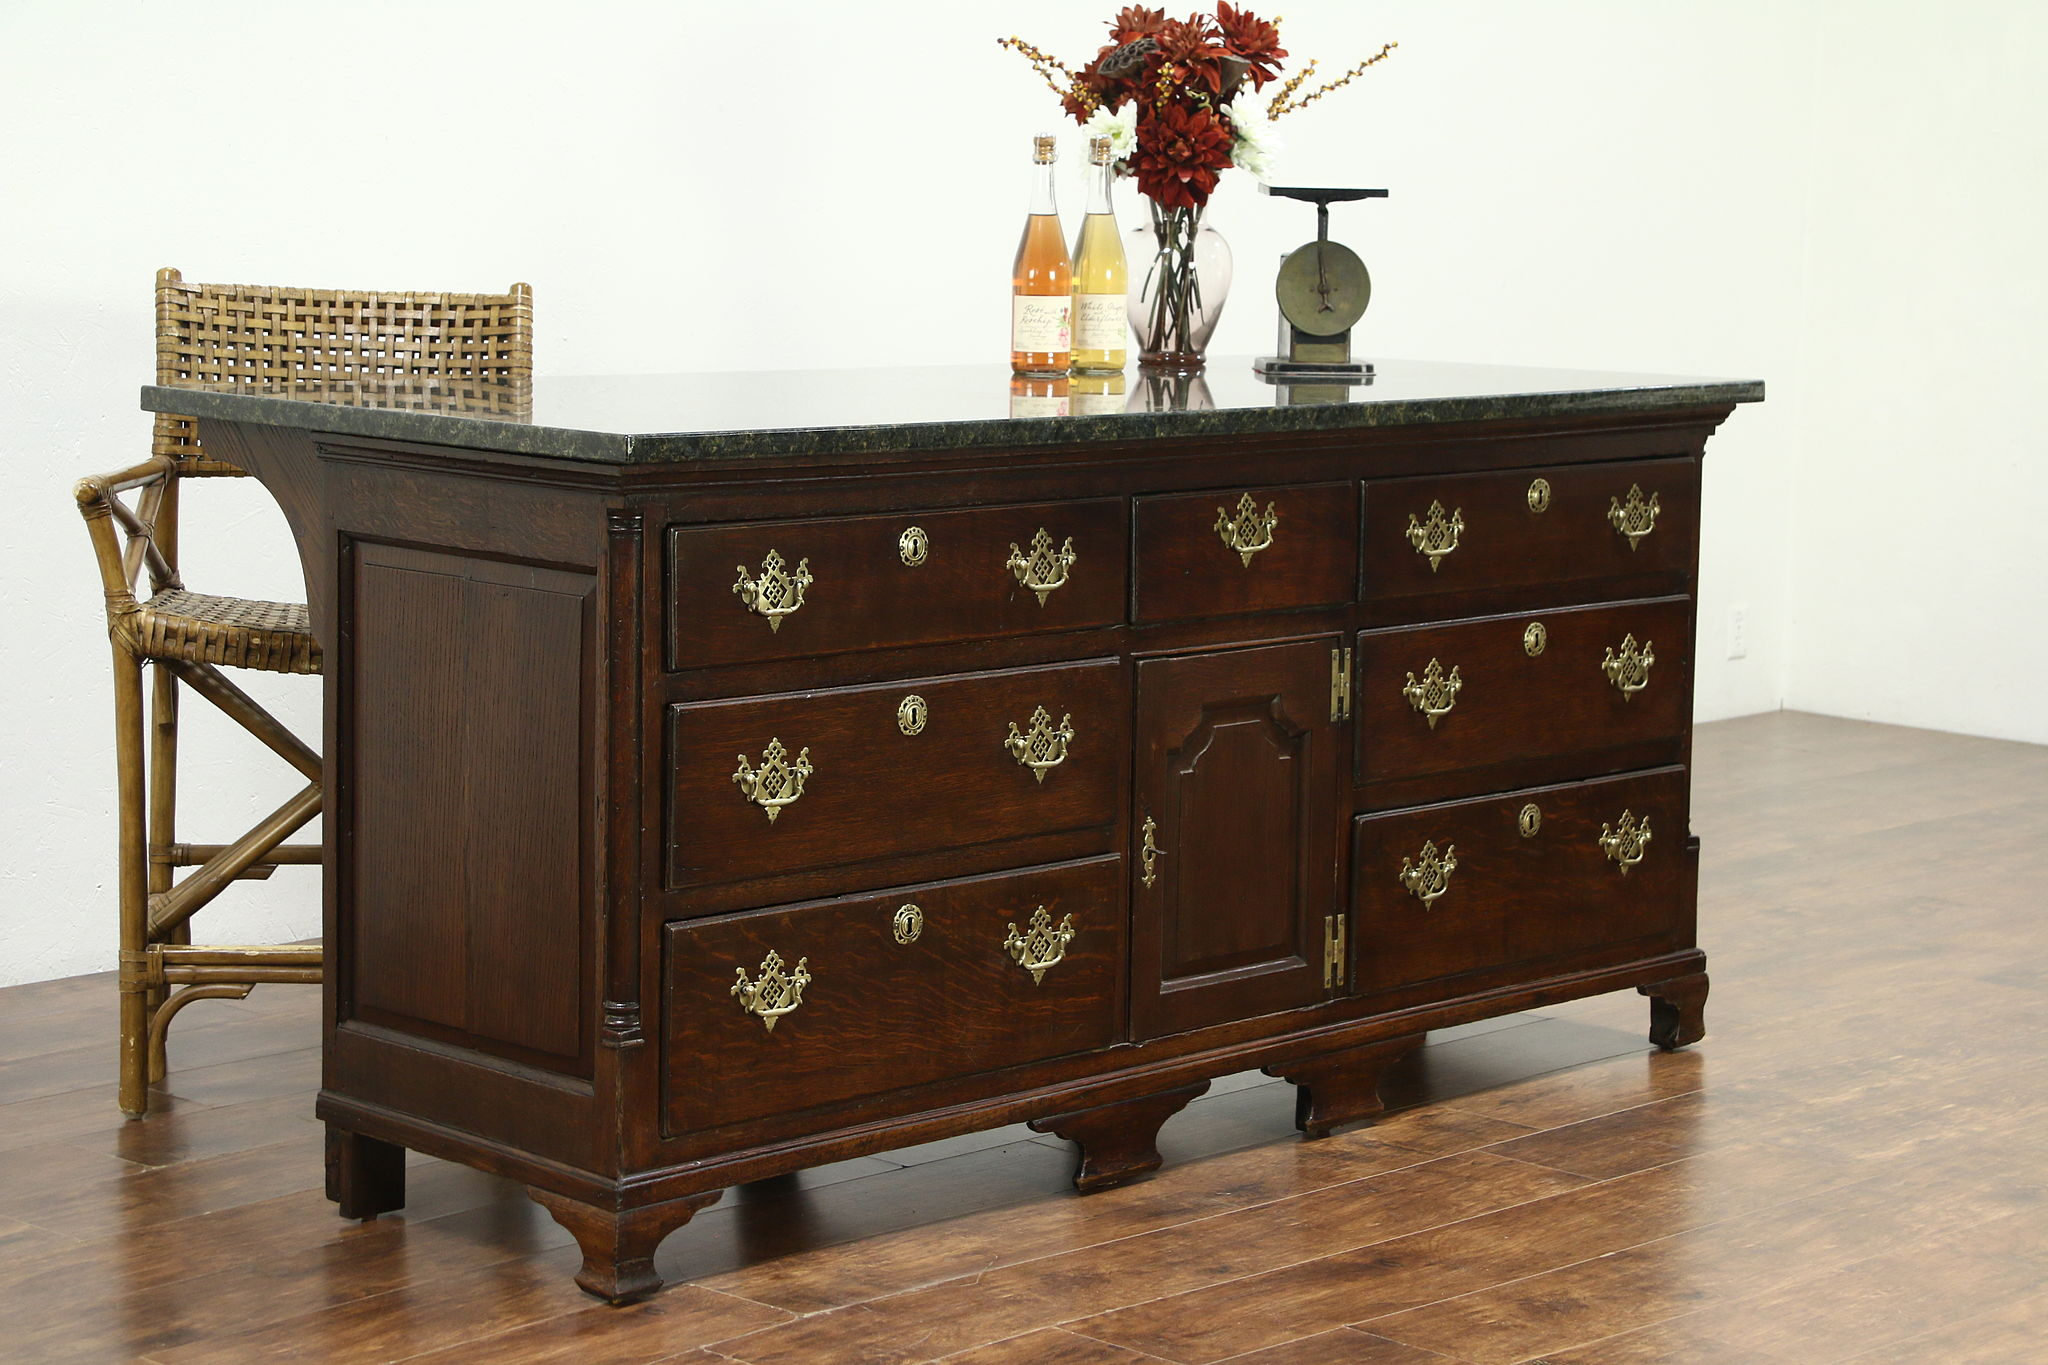 kitchen island counter granite top from oak english 1840 antique sideboard kitchen island store counters   harp gallery antique furniture  rh   harpgallery com